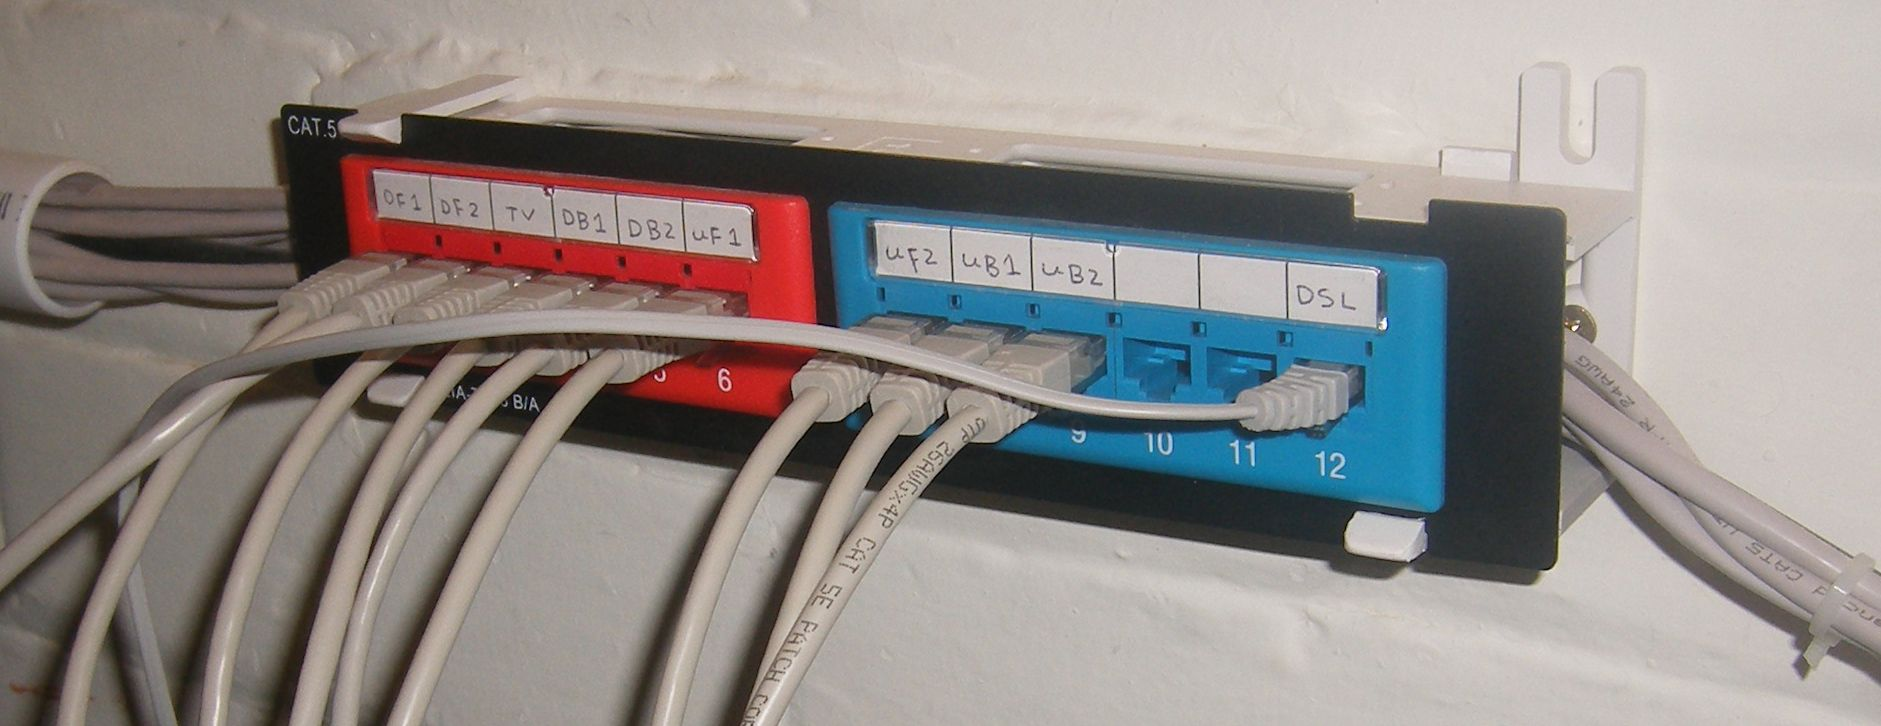 medium resolution of cat 6a patch panel wiring diagrams